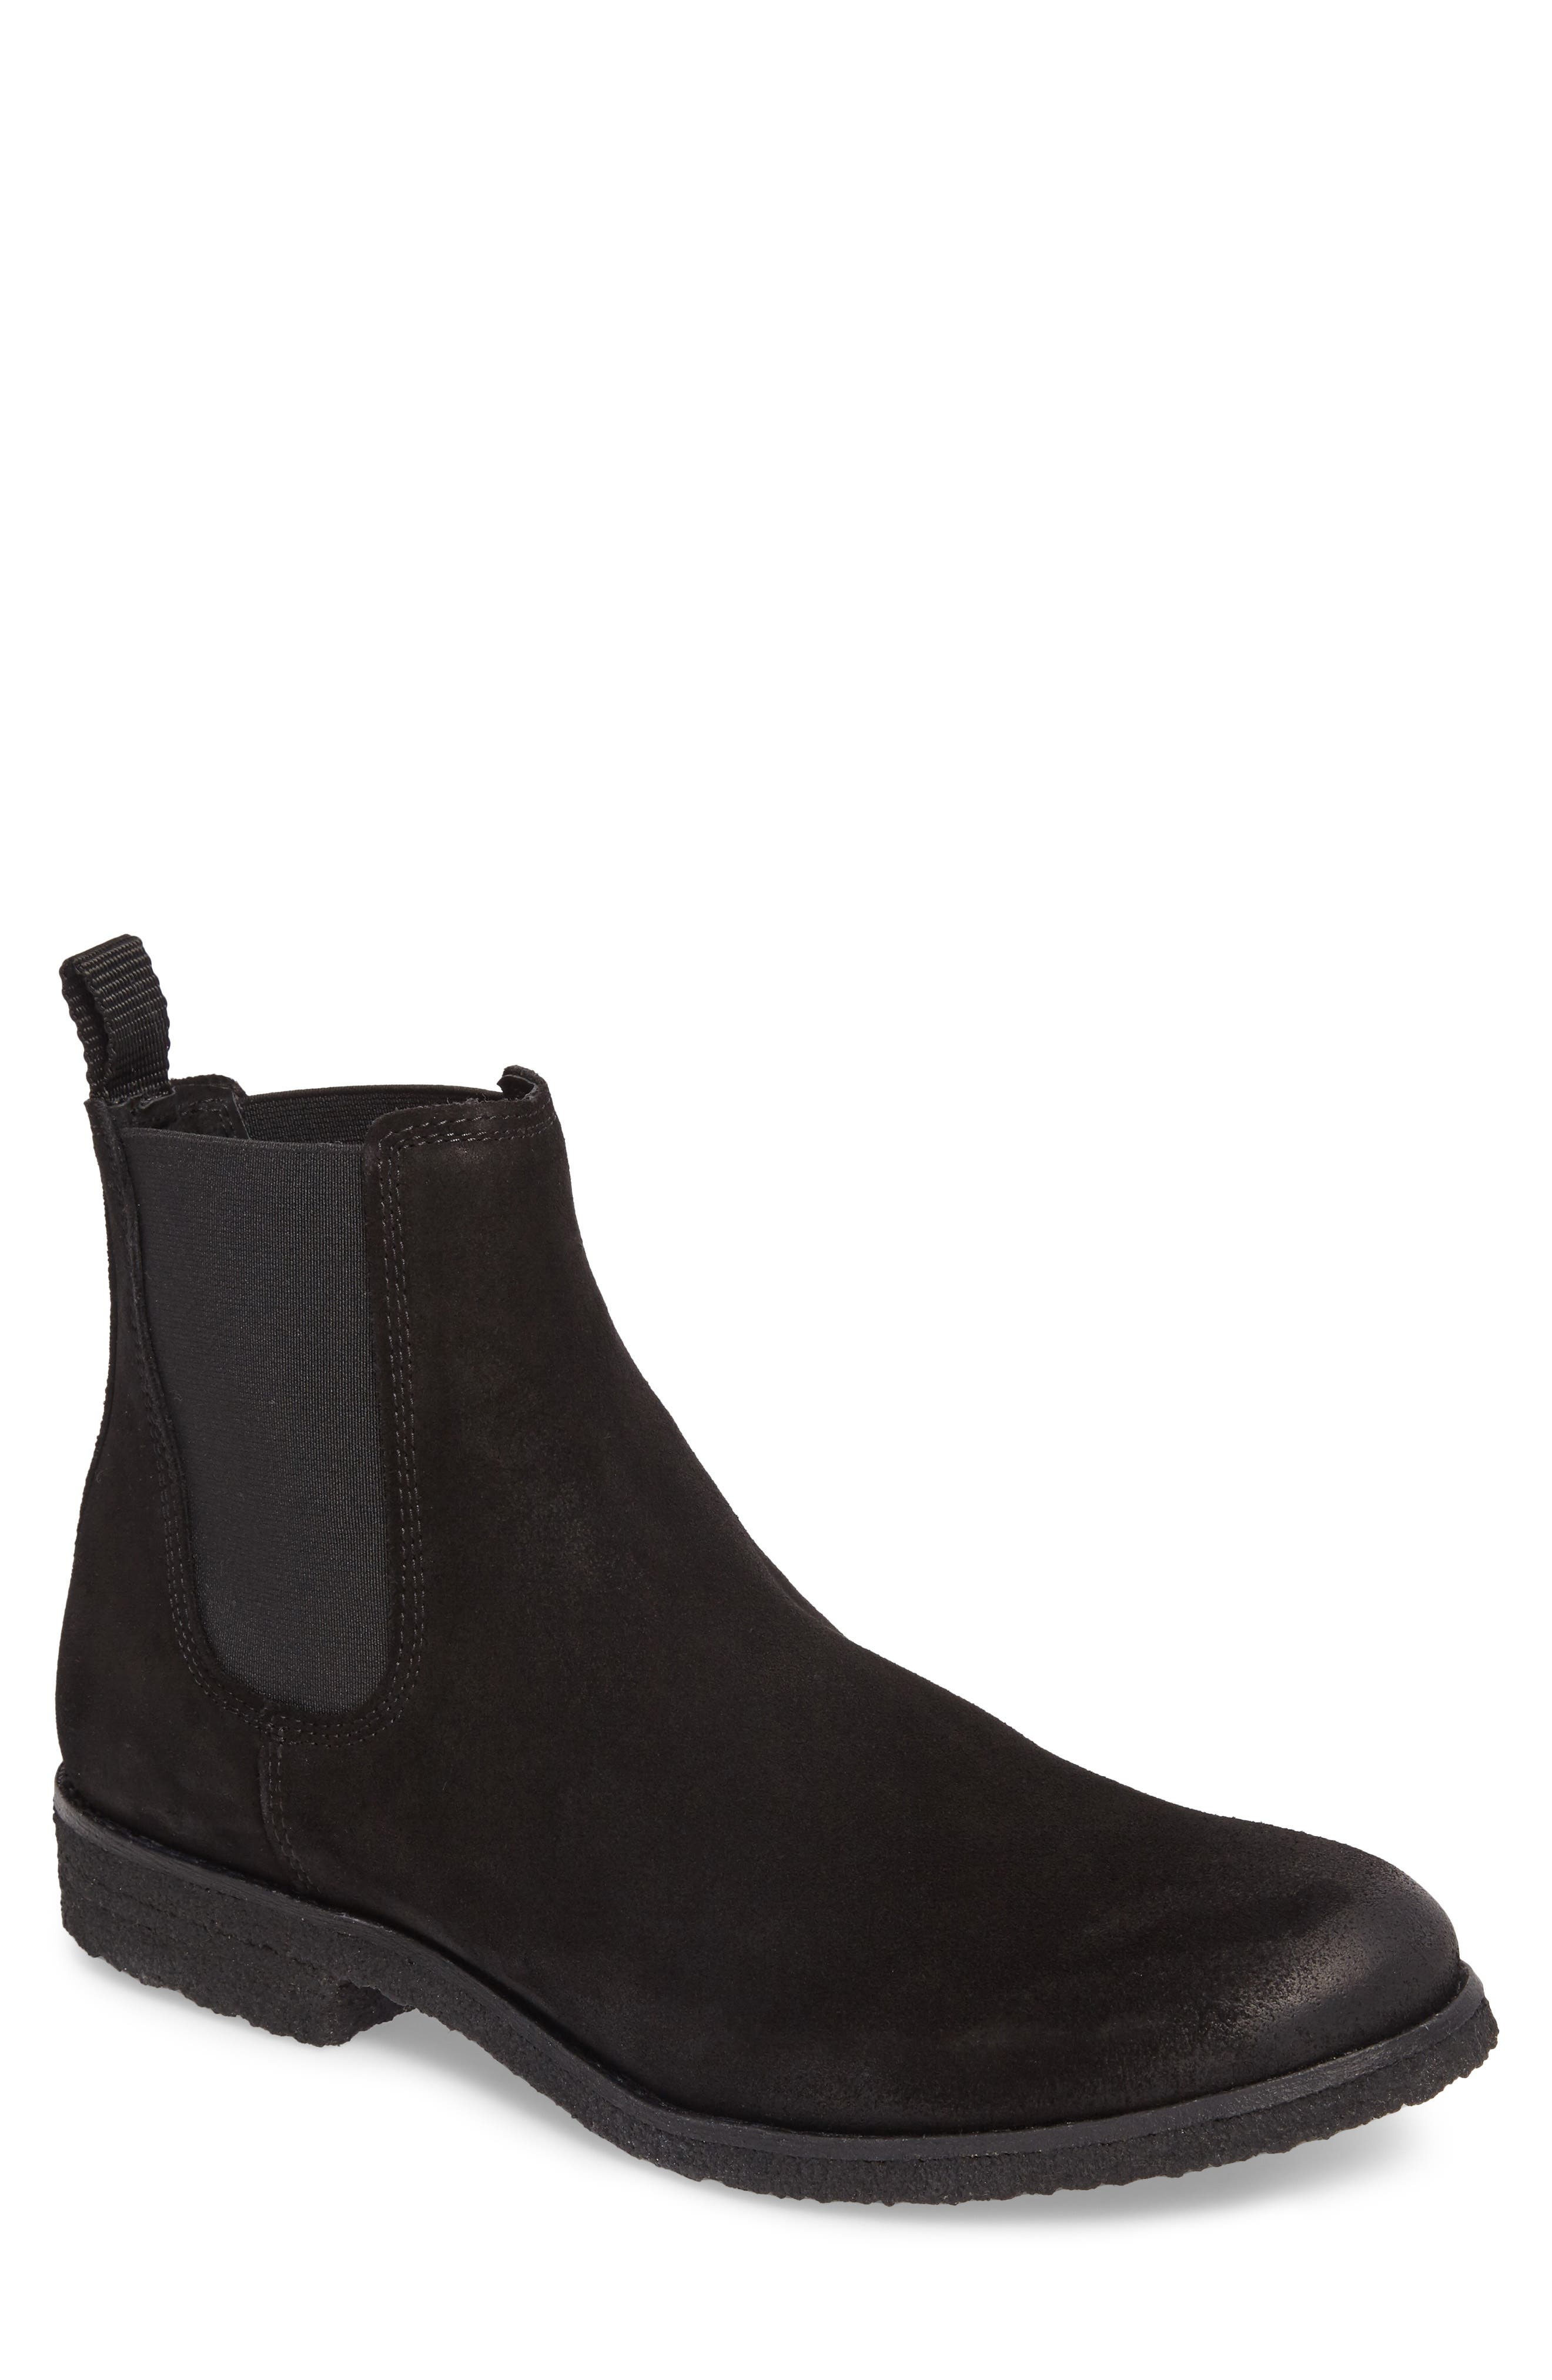 Jared Chelsea Boot,                         Main,                         color, Black Suede